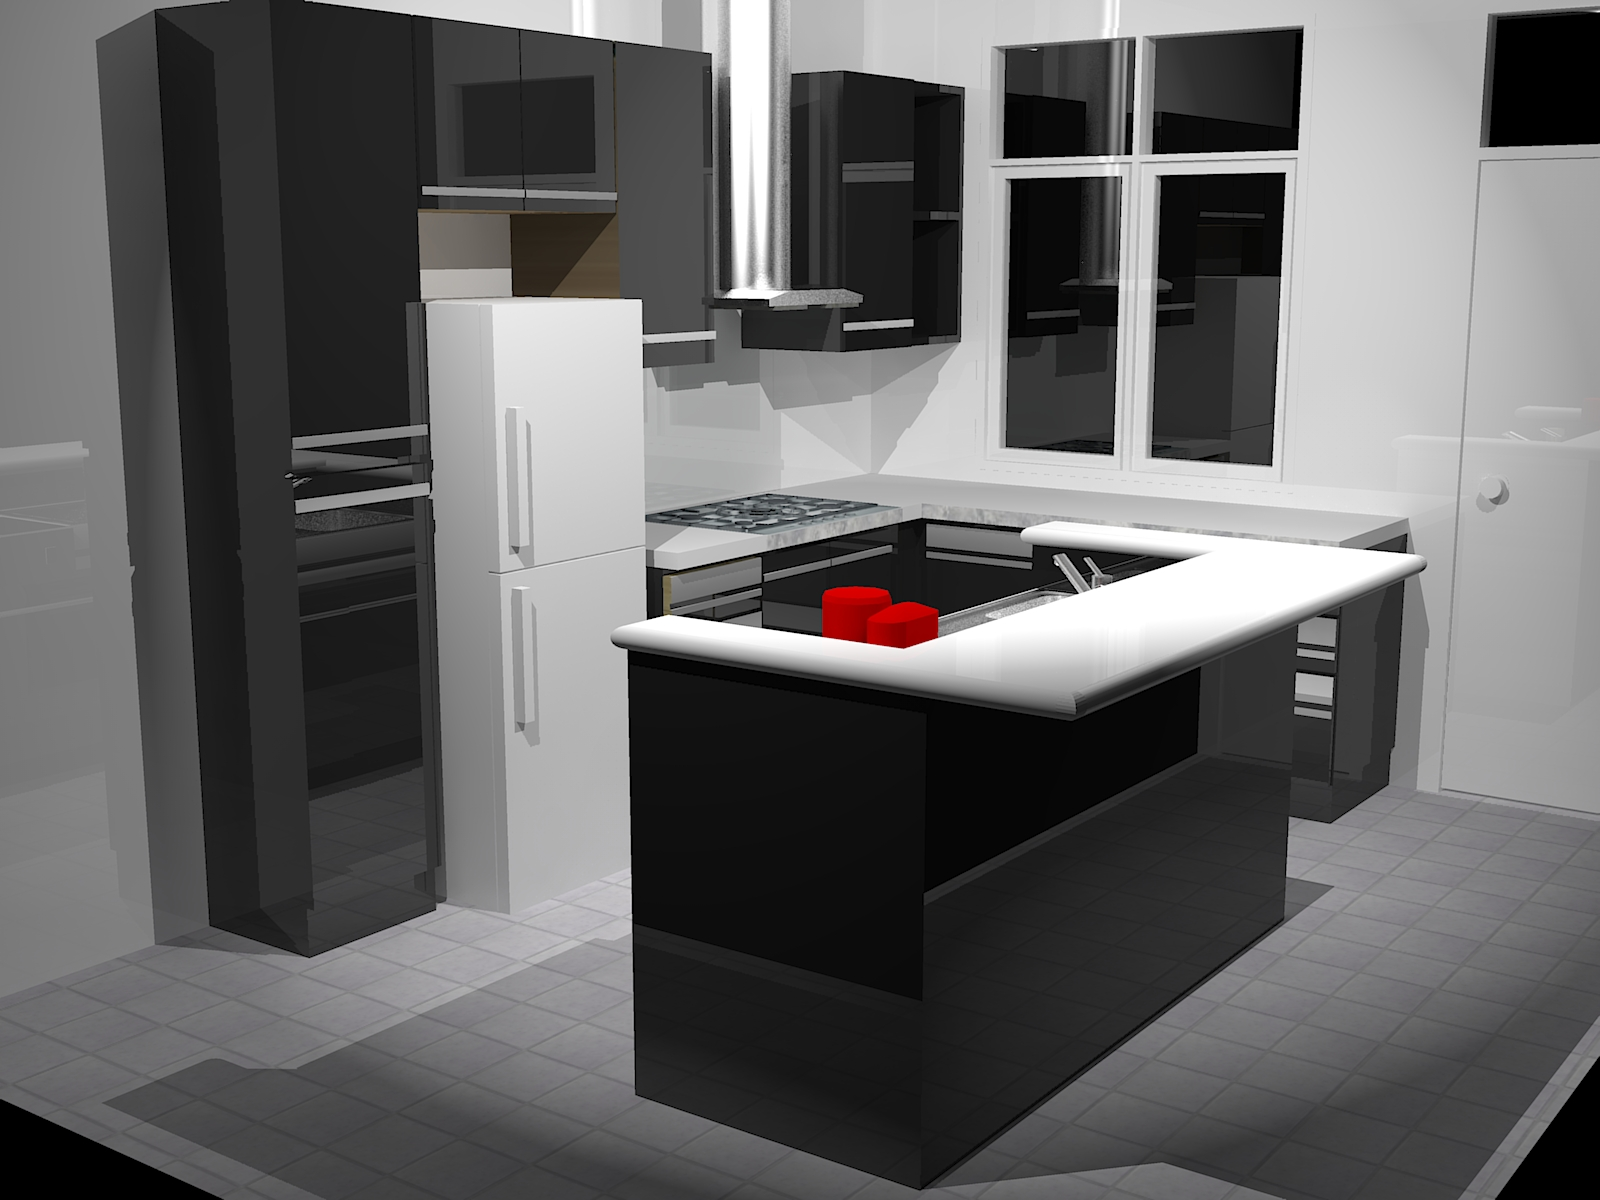 Custom kitchen craze for Kitchen design 7 x 7